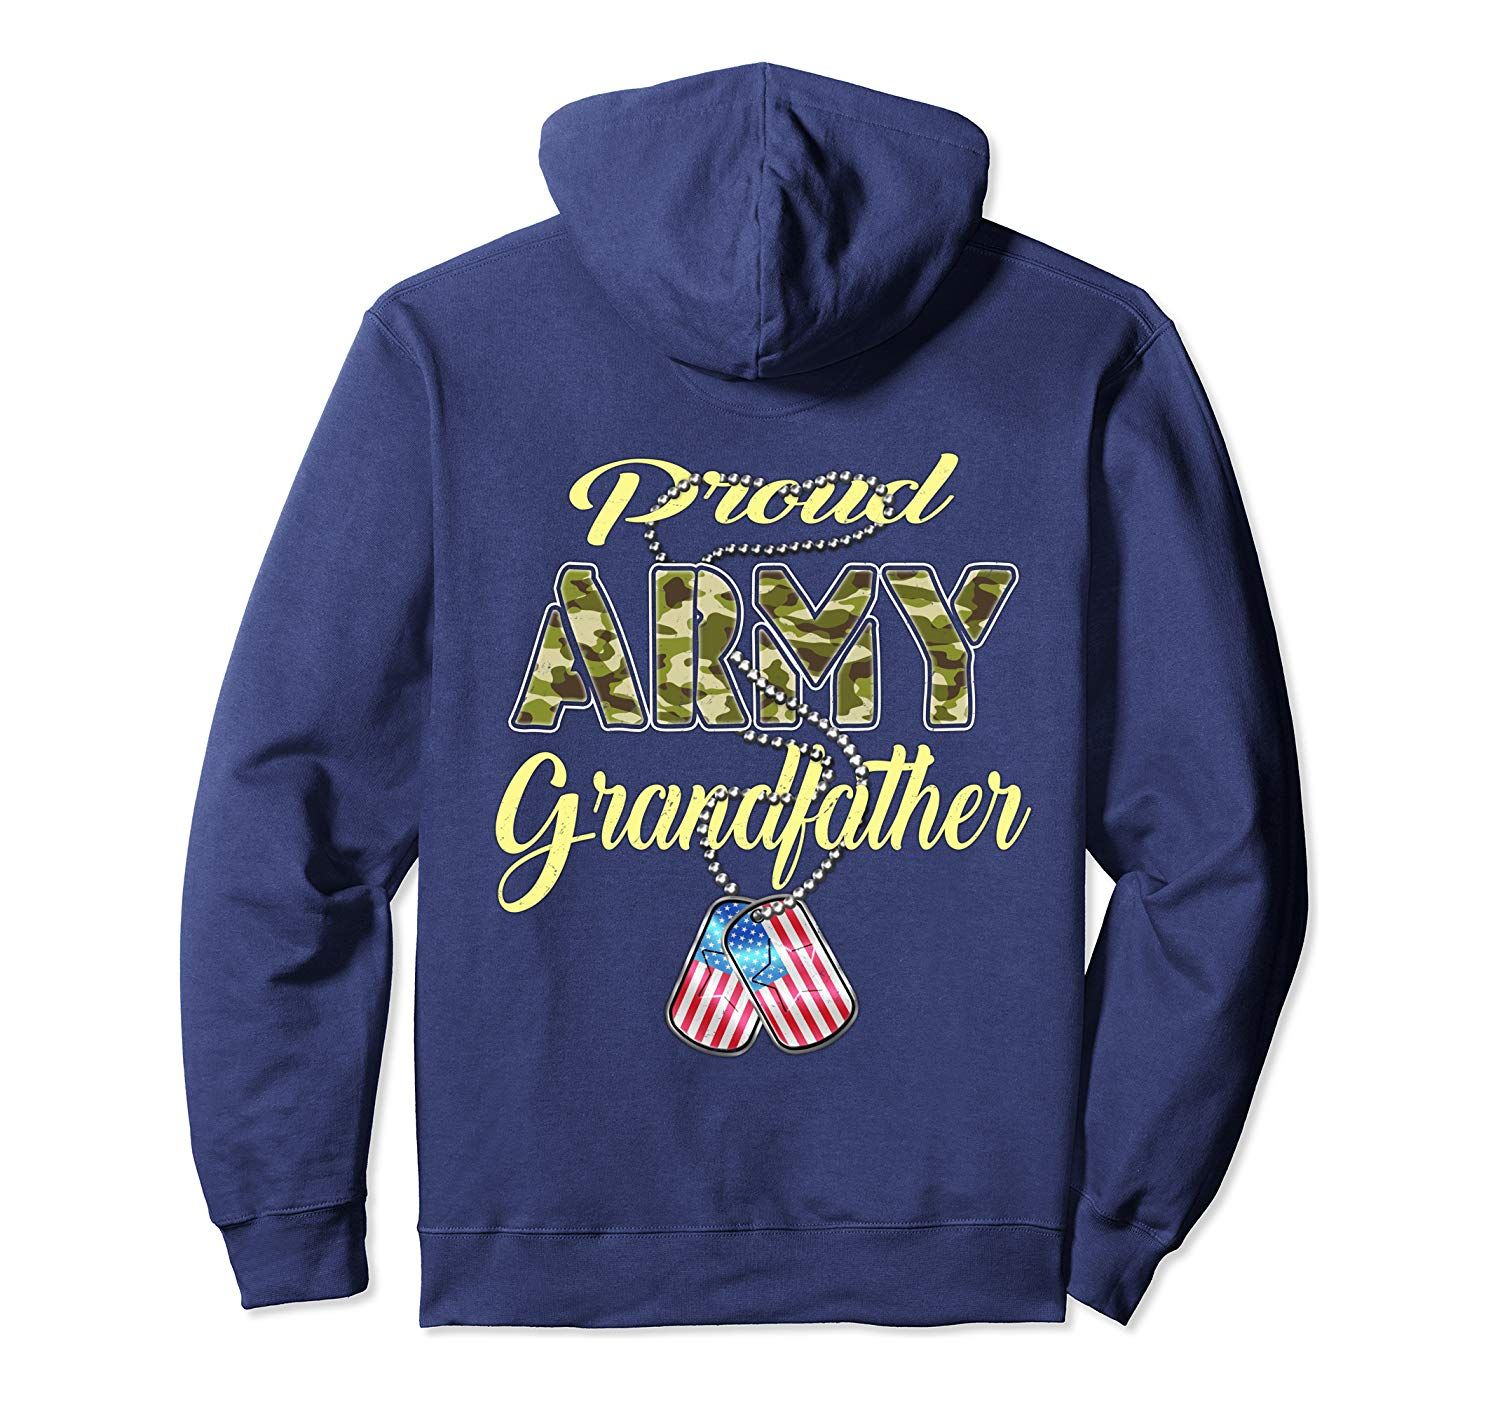 Proud Army Grandfather US Flag Dog Tag Military Grandpa Gift Pullover Hoodie #grandpagifts